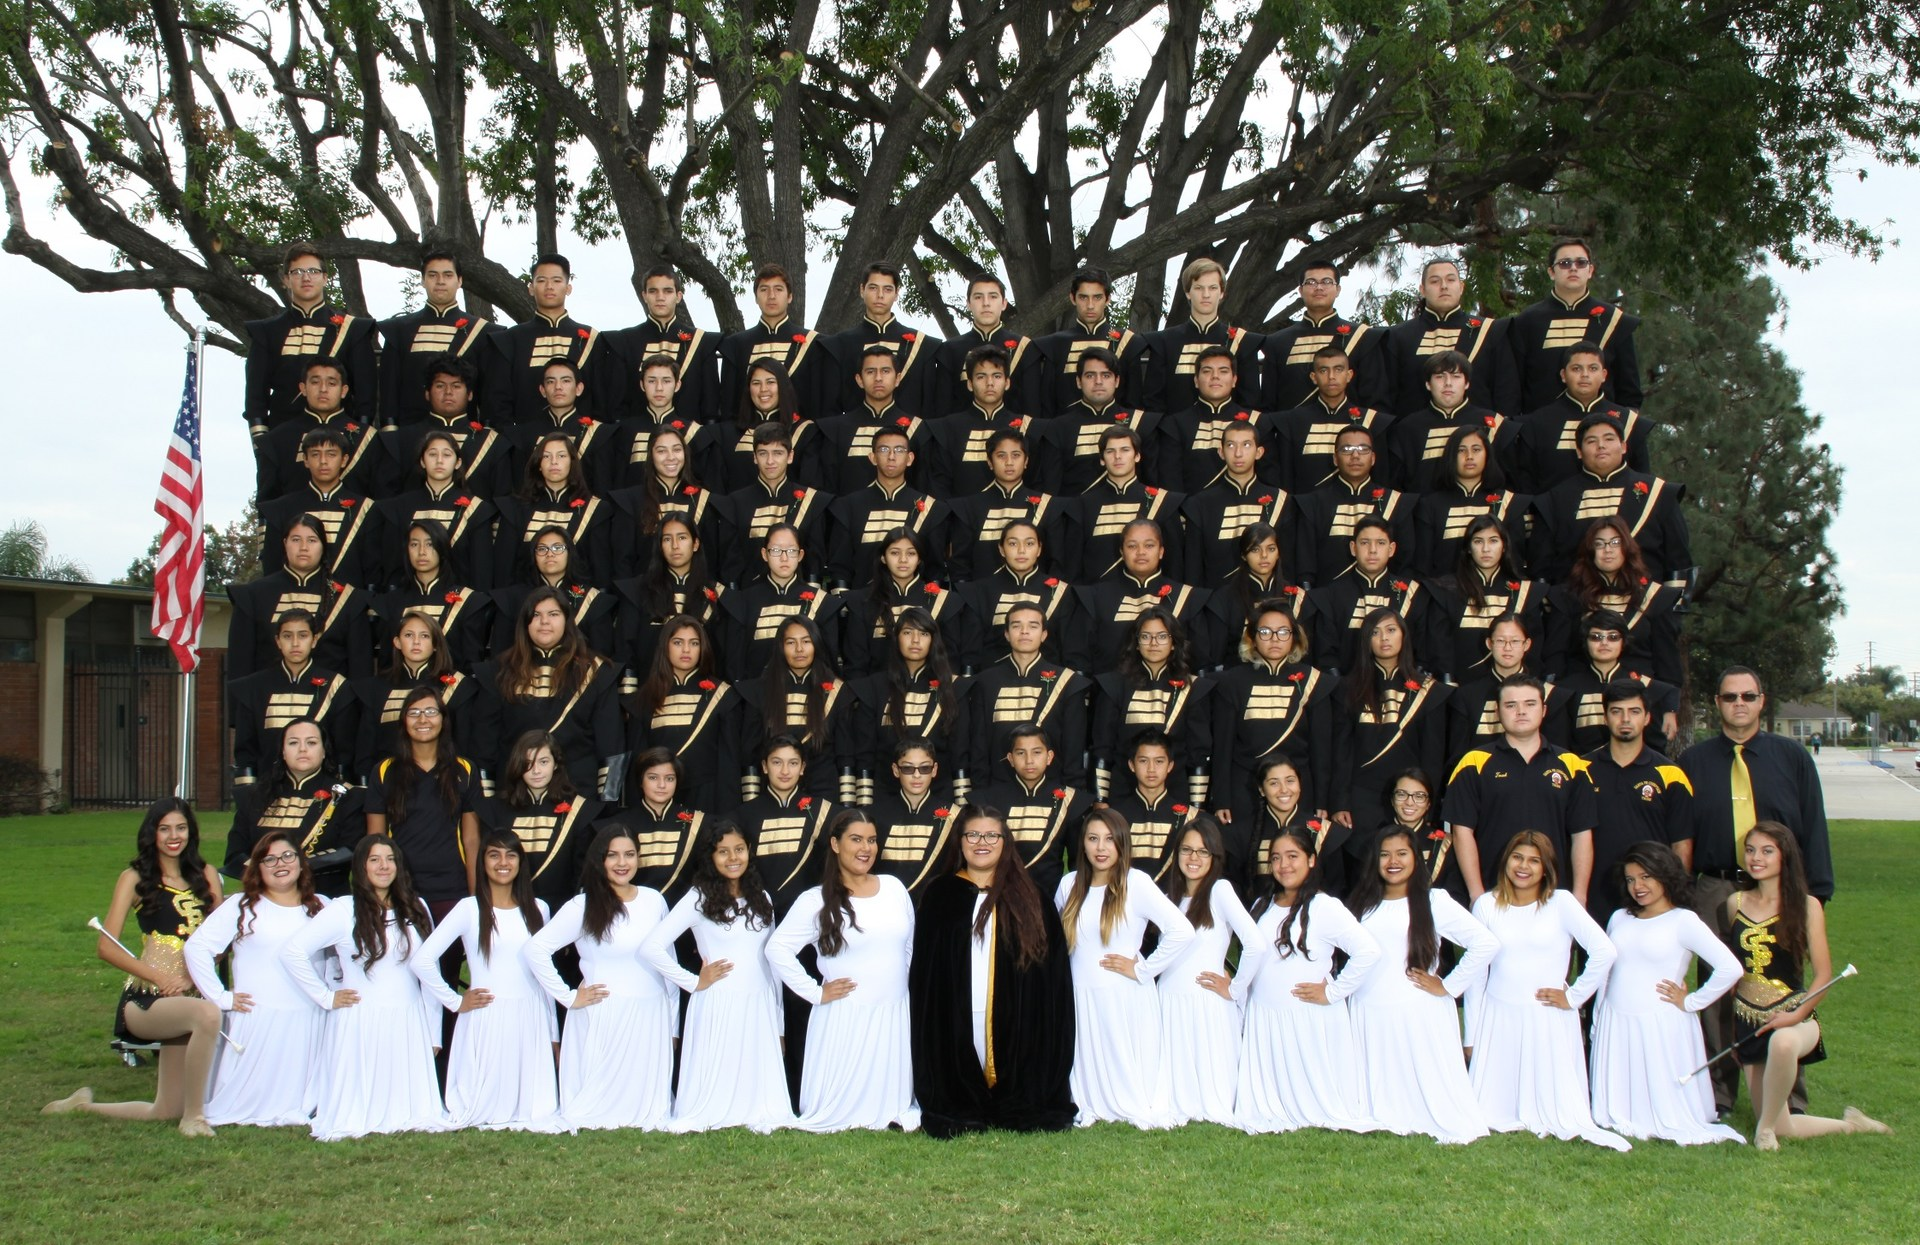 Santa Fe High School Marching Band